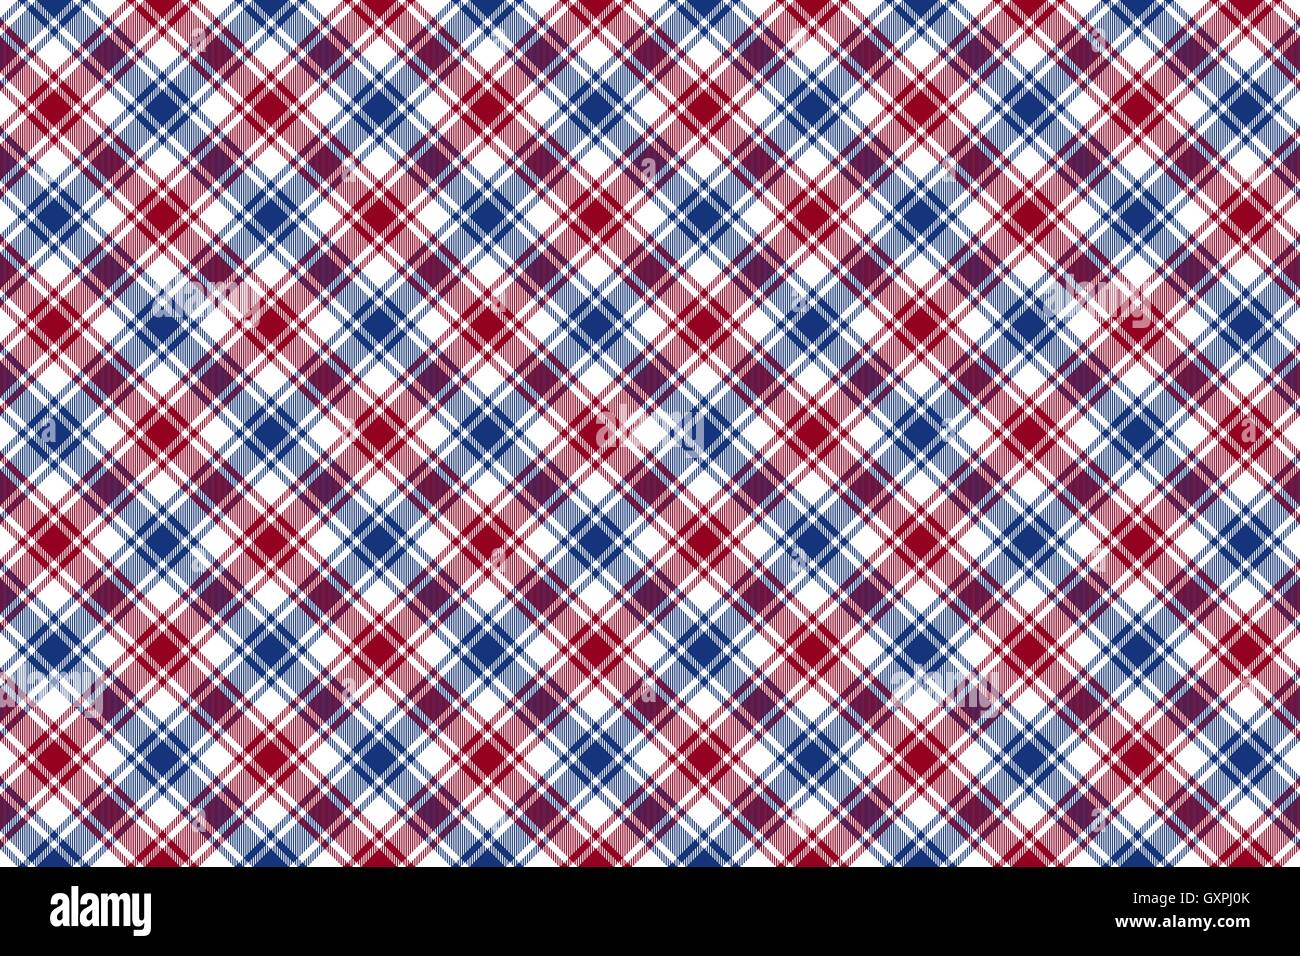 Red Blue White Diagonal Check Texture Seamless Pattern Background Vector Illustration